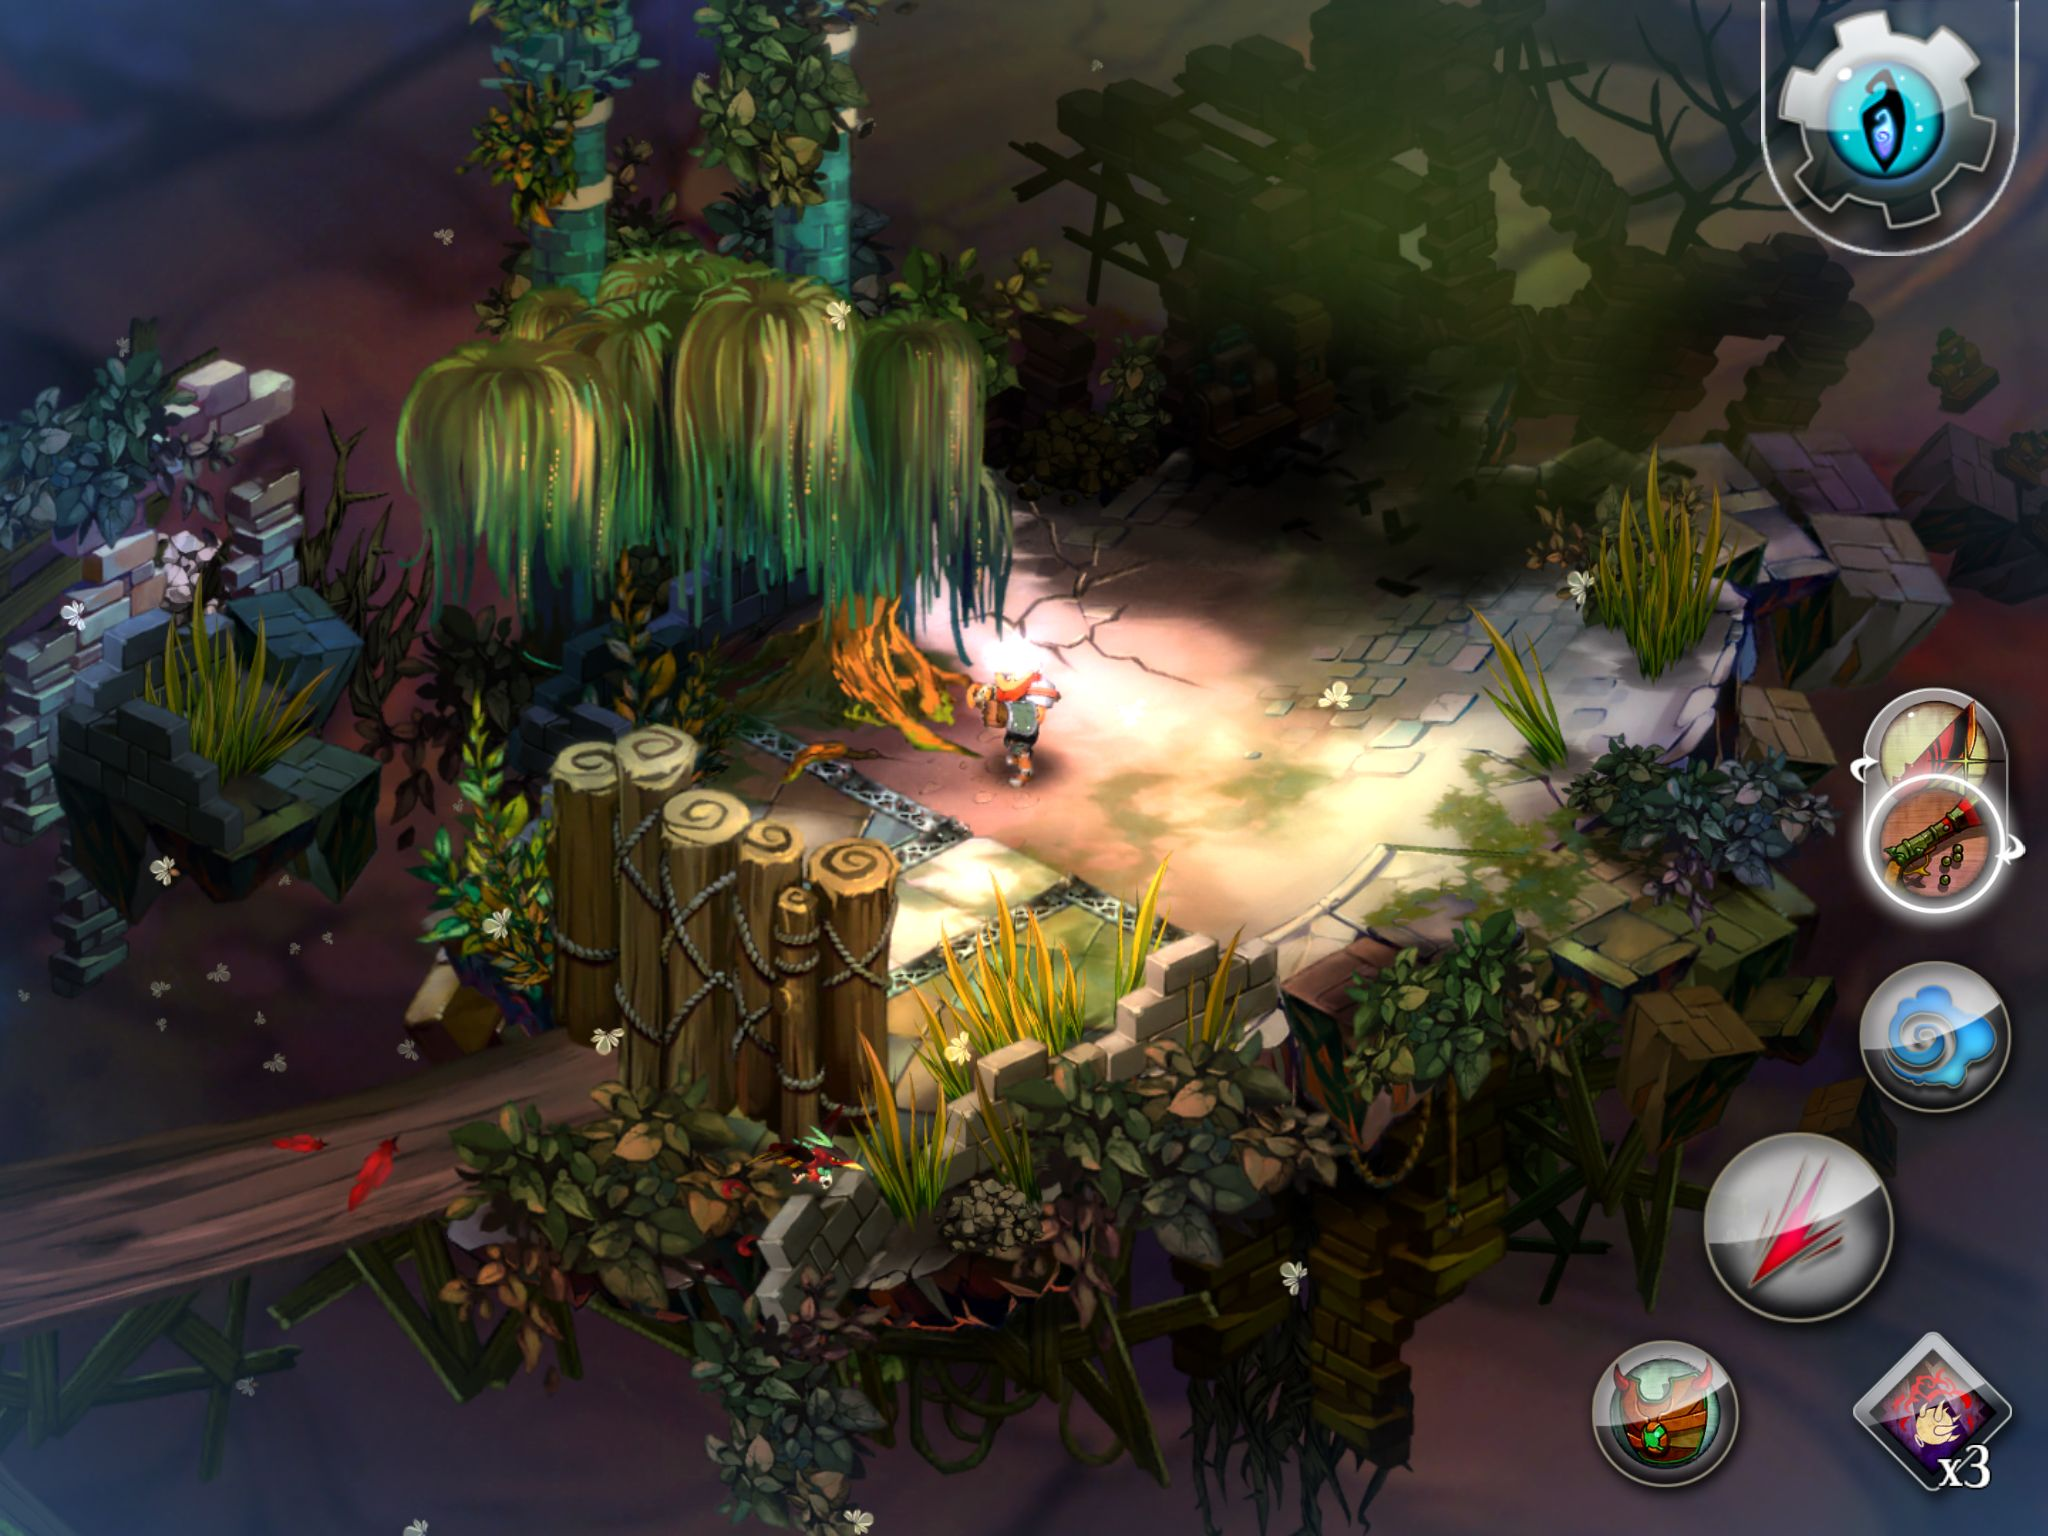 Gold Award-winning action-RPG Bastion is now available on iPhone and iPad for just 69p/99c